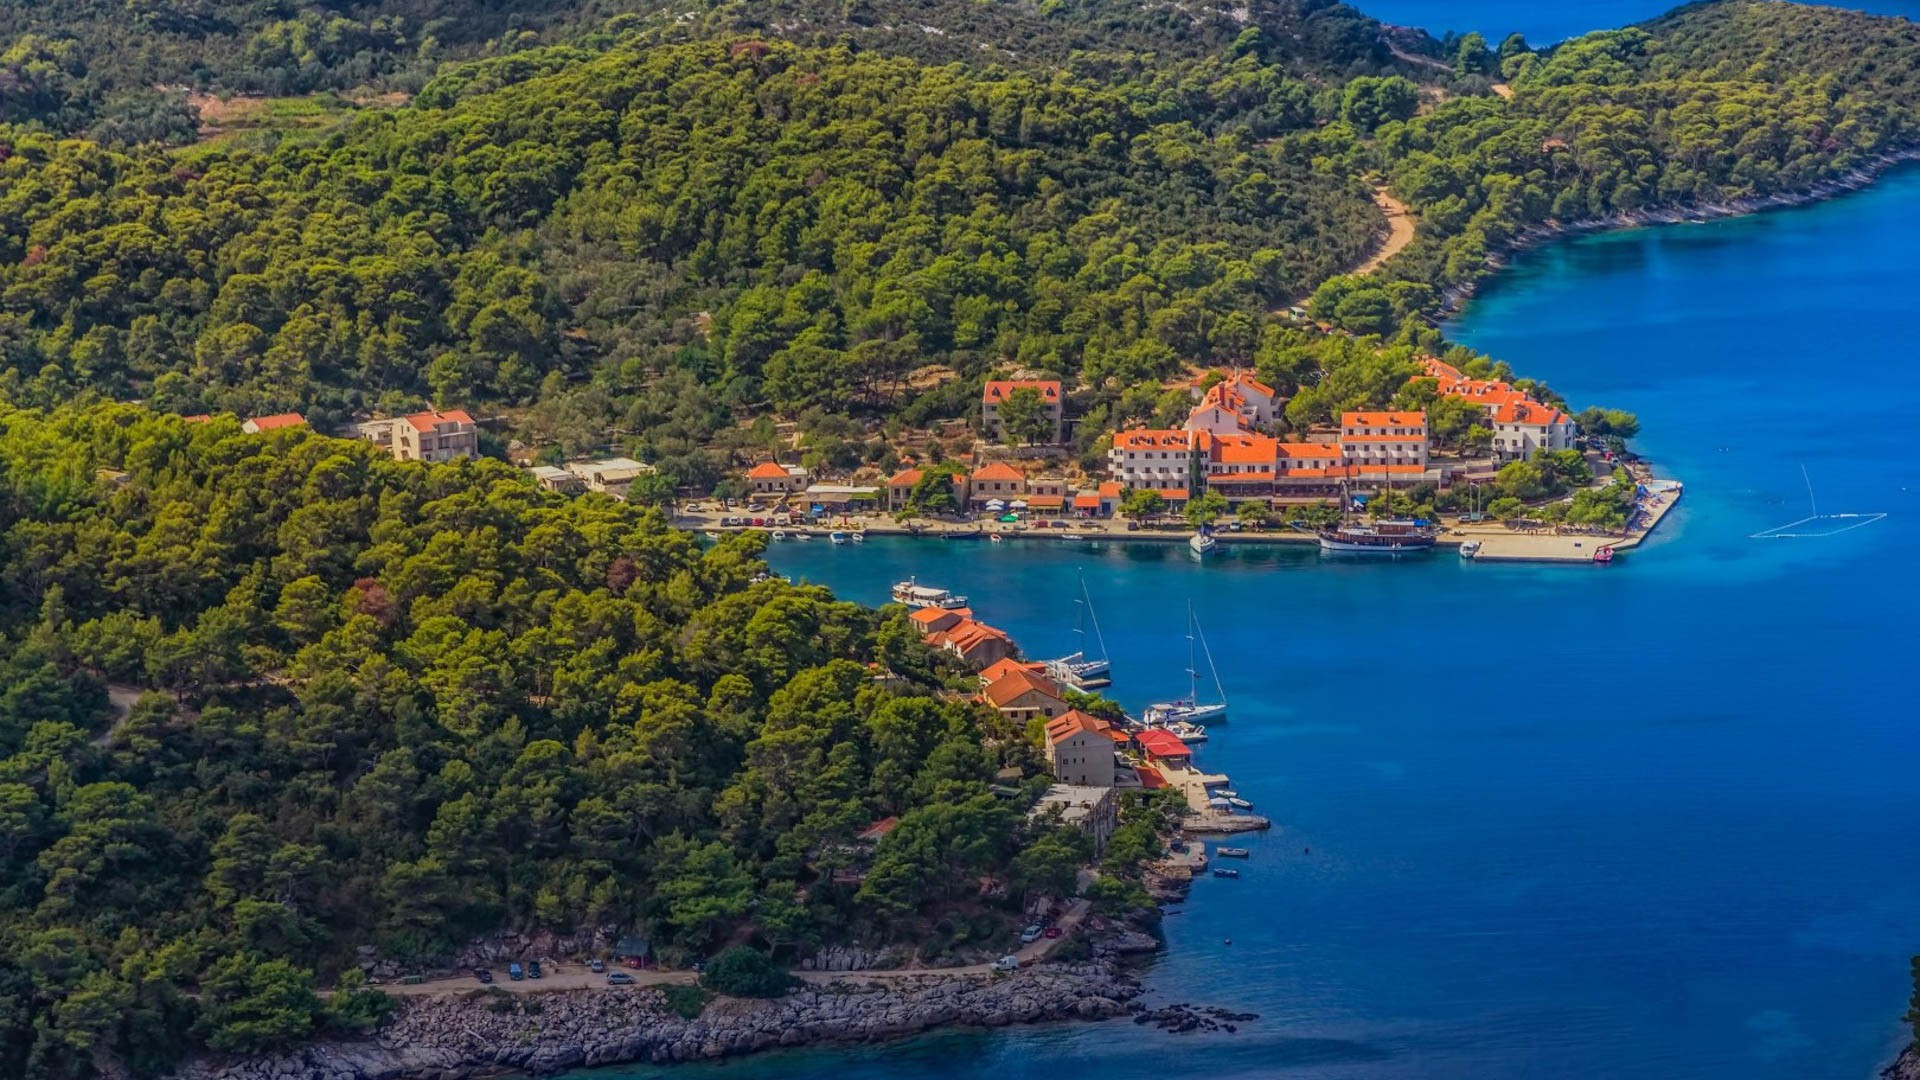 Pomena (Mljet Island) - Adriatic Sea | Croatia Cruise Croatia Cruise